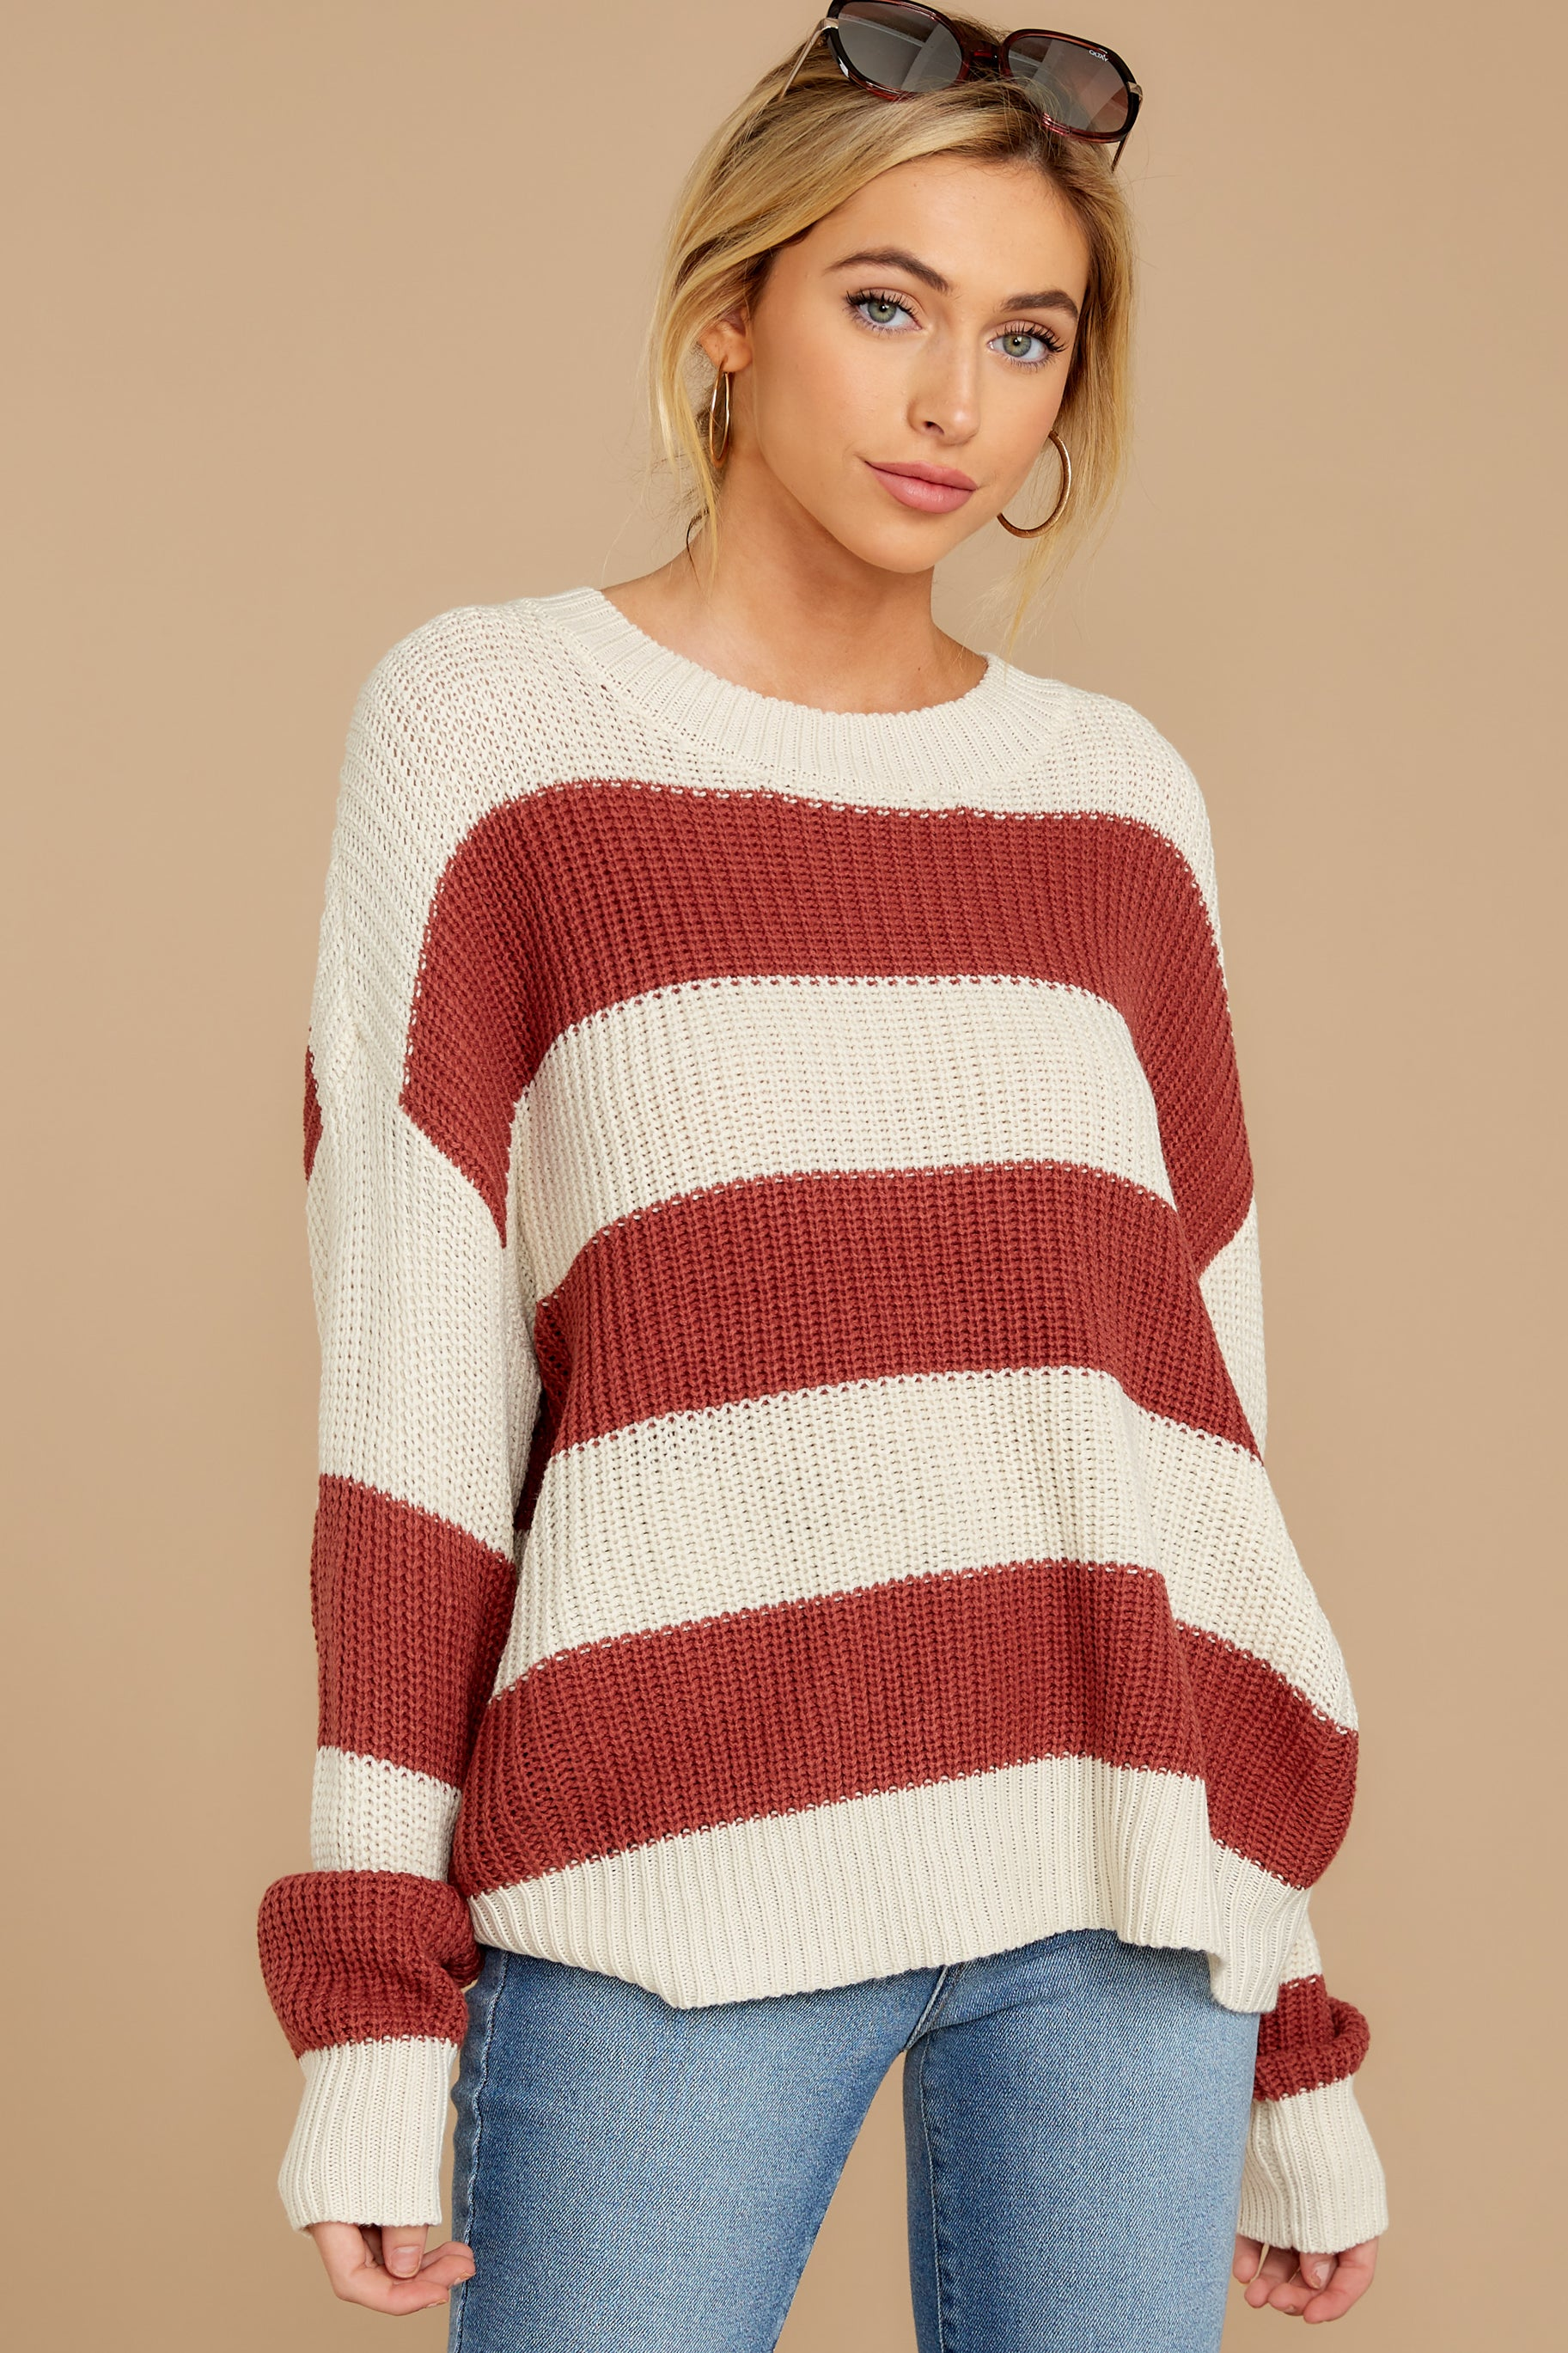 7 From Paris To Prague Marsala And White Stripe Sweater at reddressboutique.com